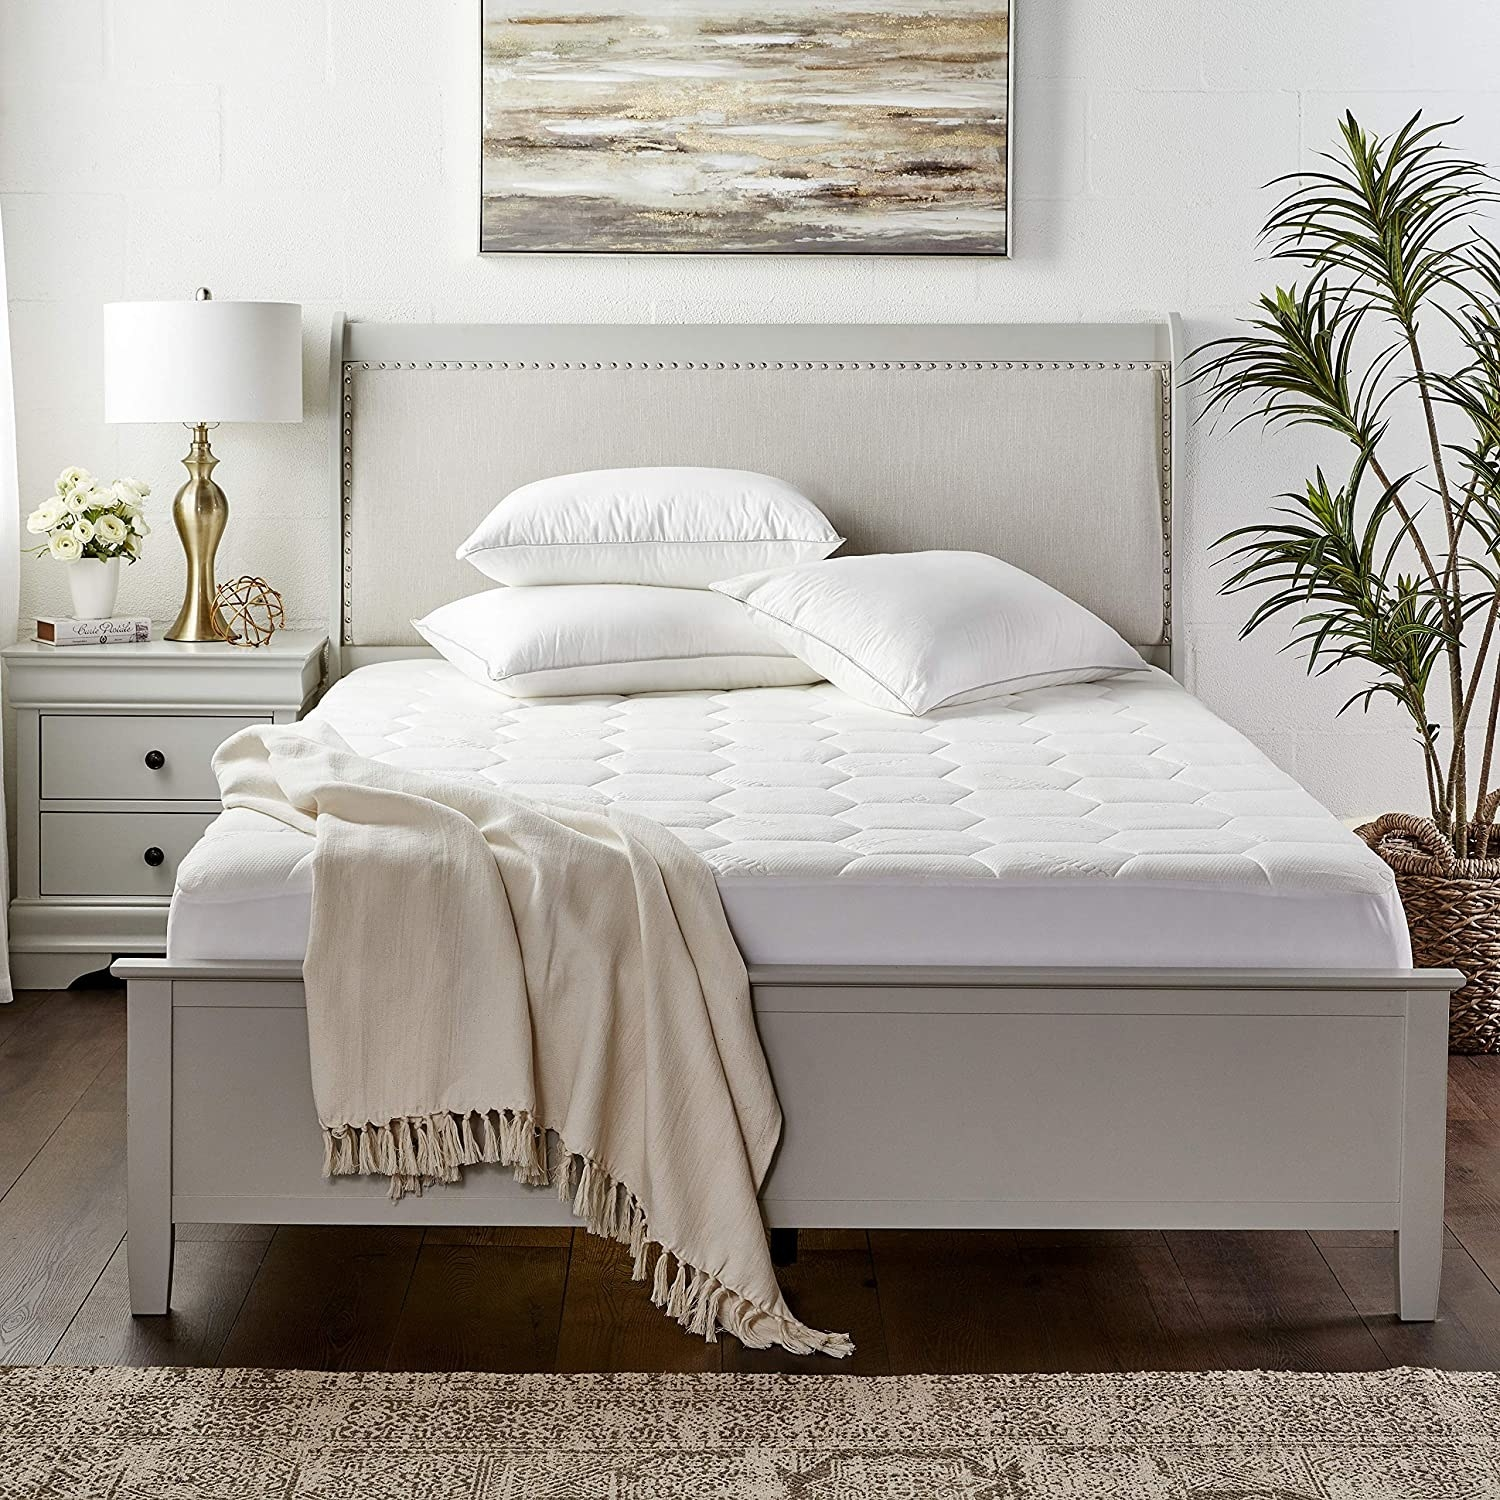 The pad on a mattress, staged in a room